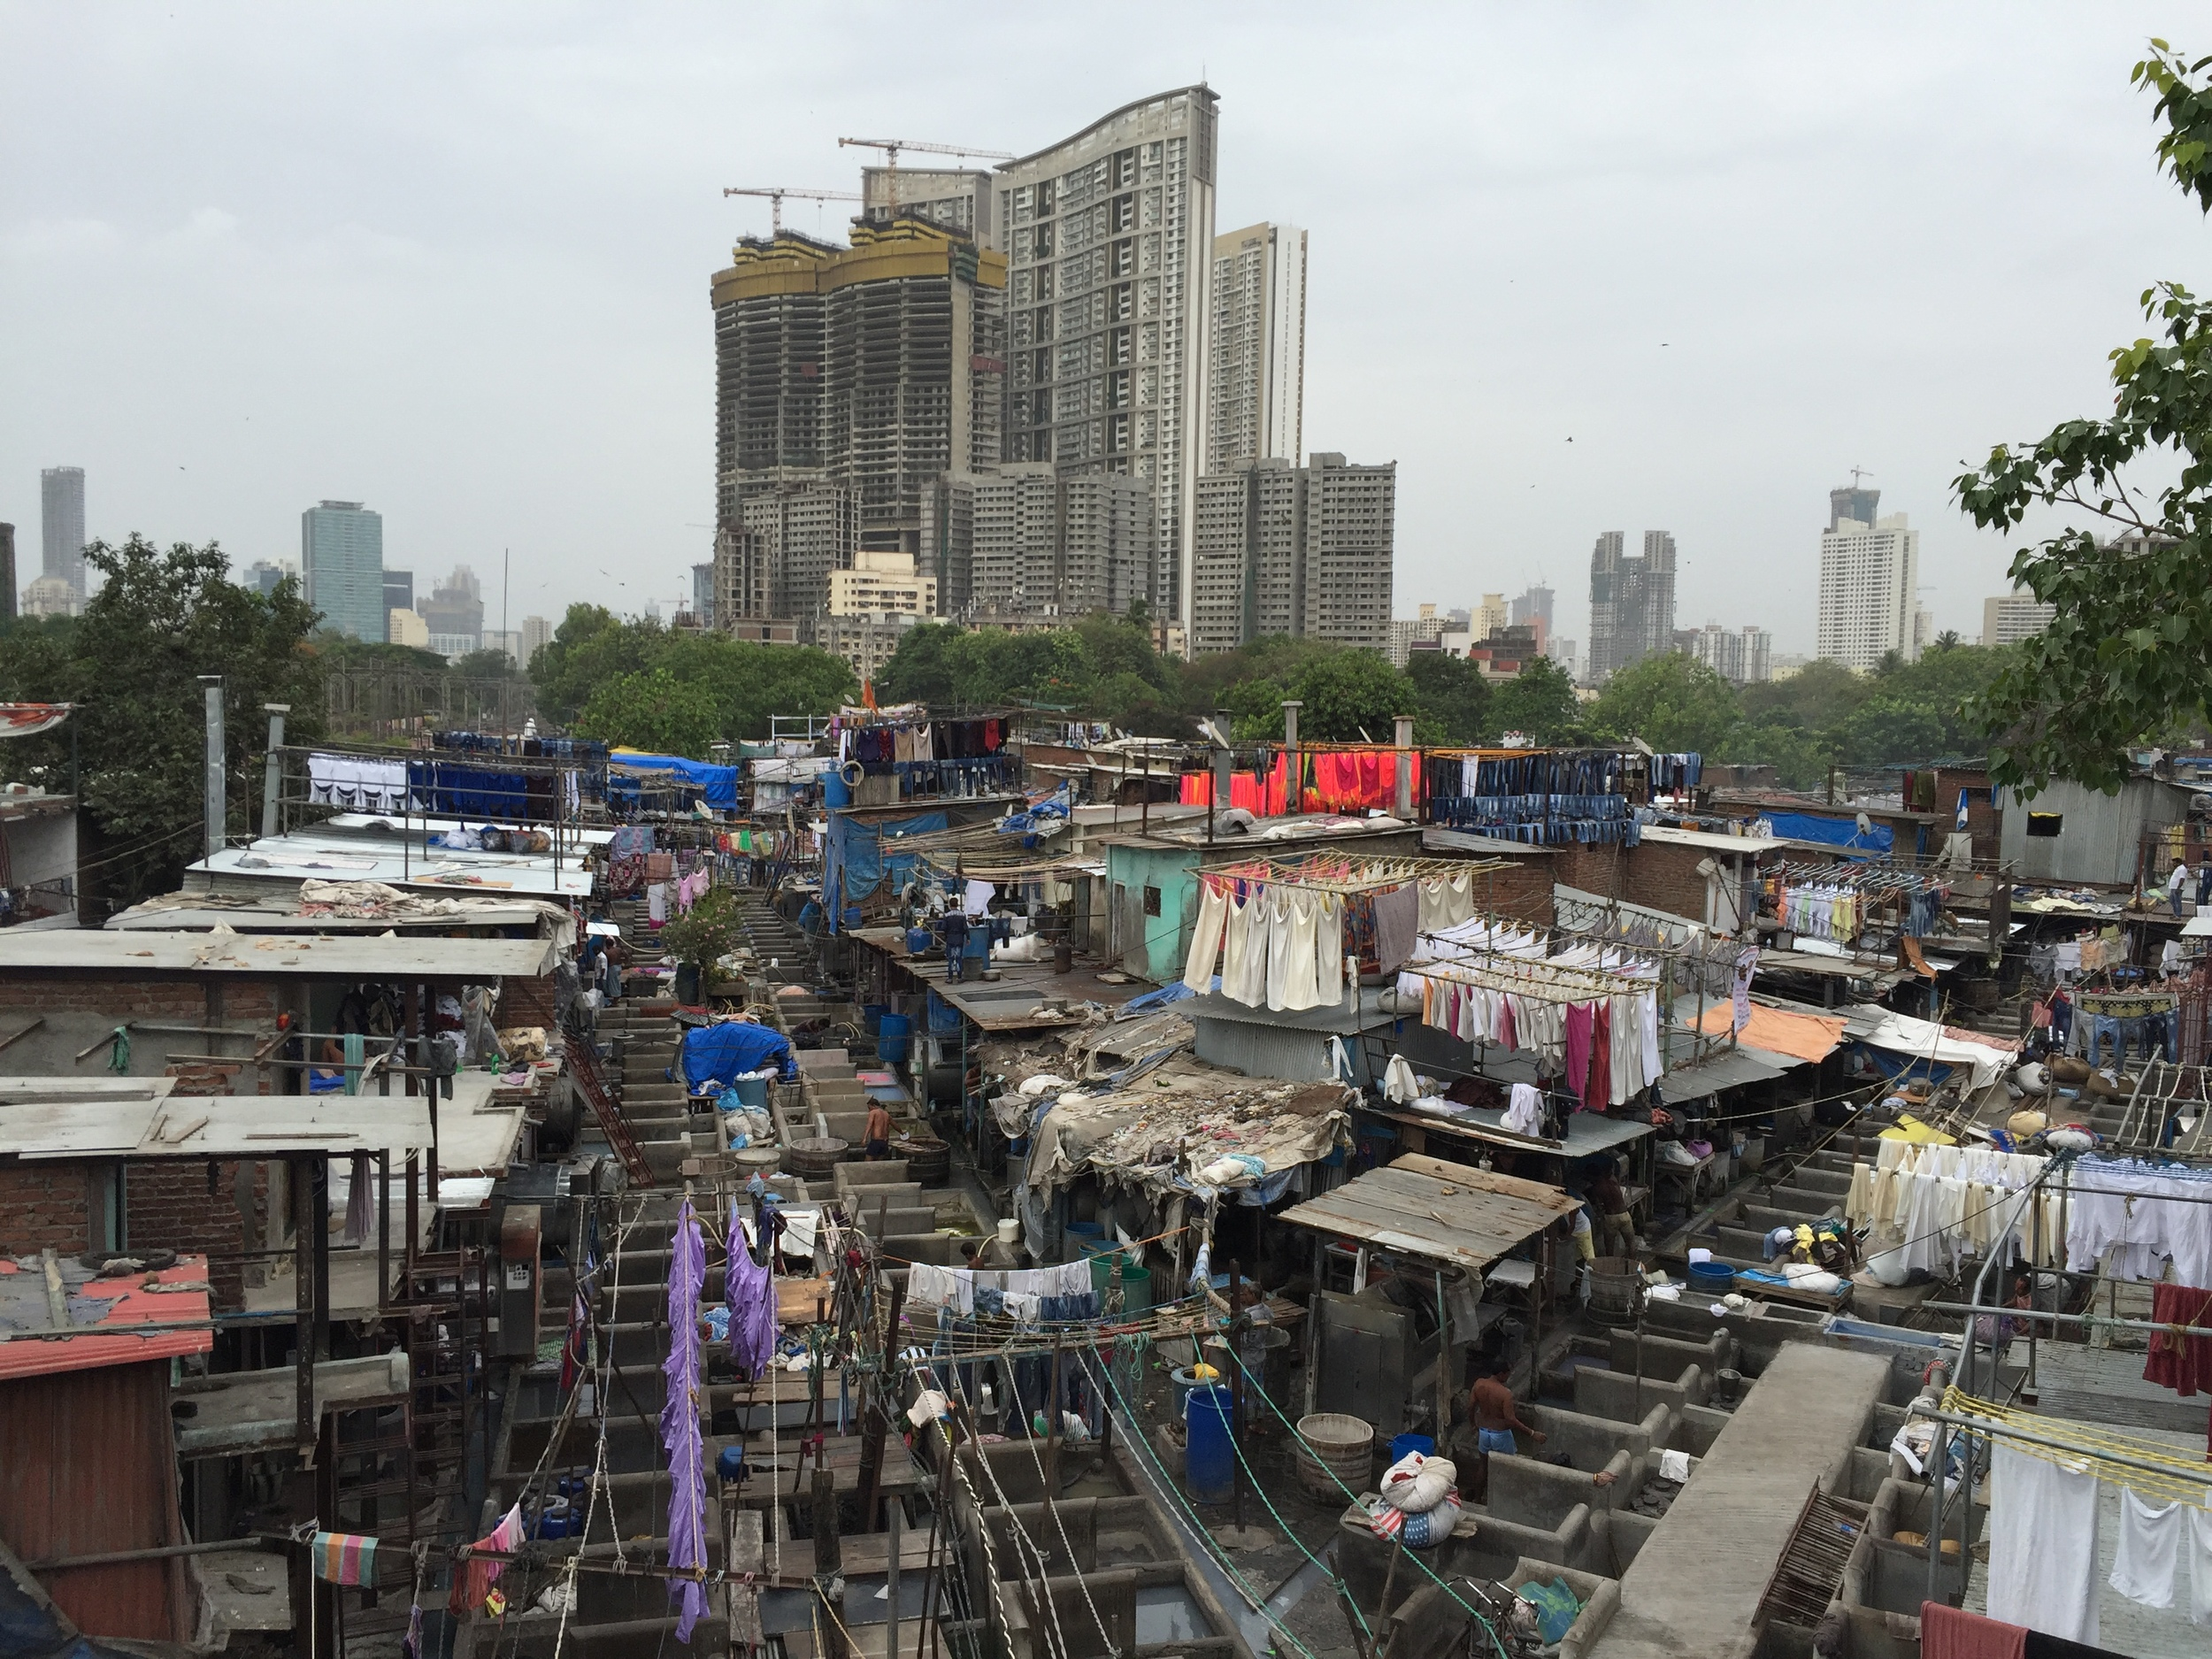 Dhobi Ghat from the overpass